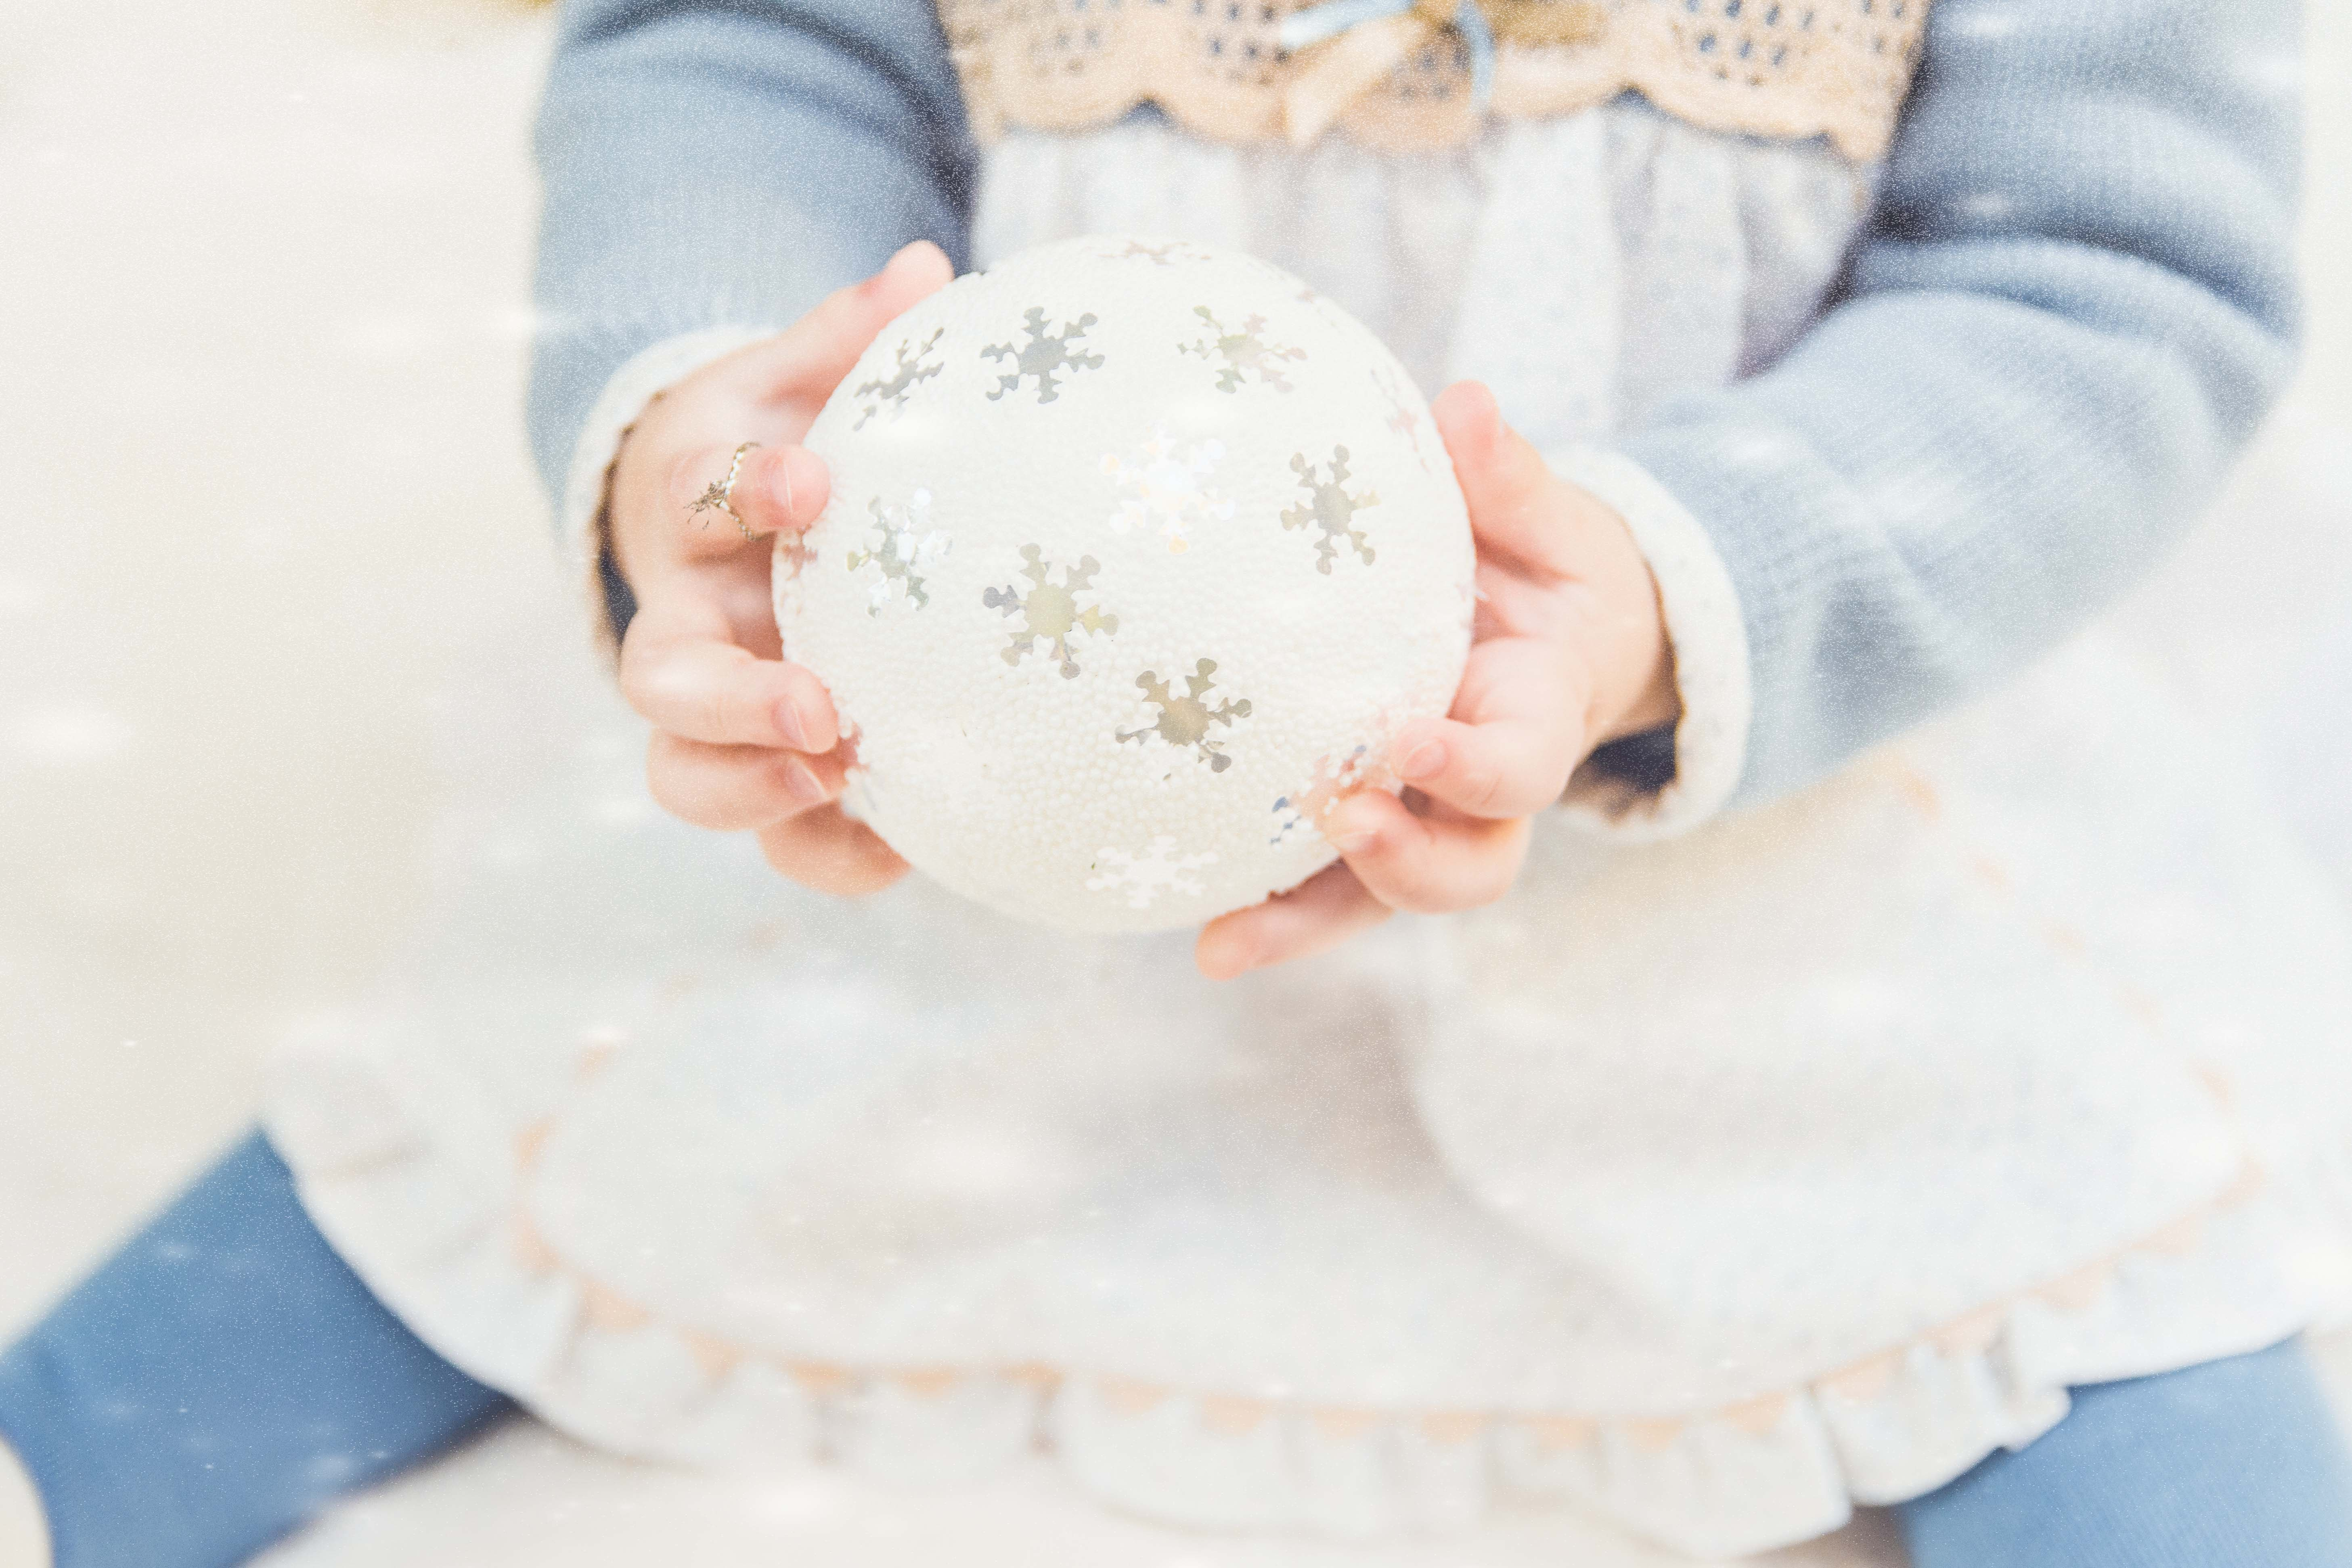 Young child holding a white Christmas ornament decorated with silver snowflakes